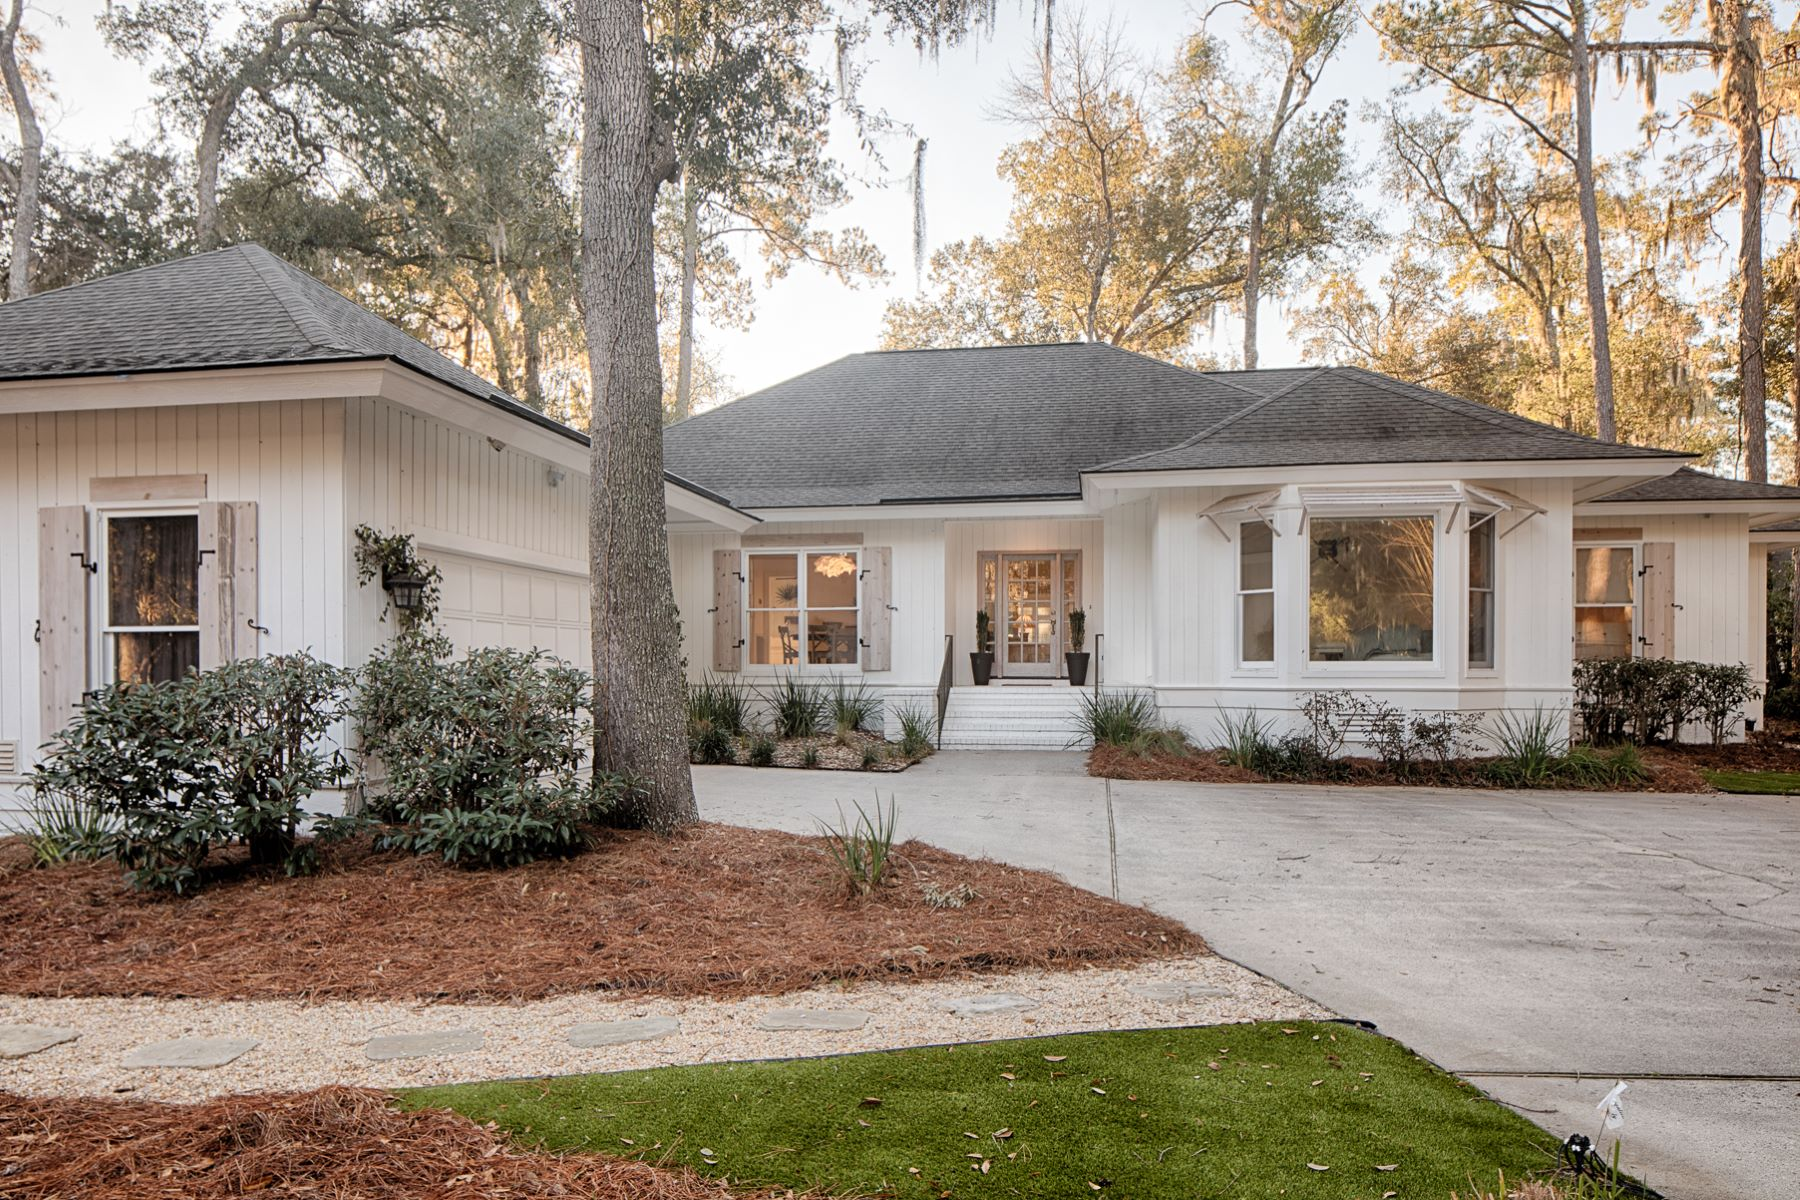 Single Family Homes for Sale at 1 Oyster Reef Road Skidaway Island, Georgia 31411 United States